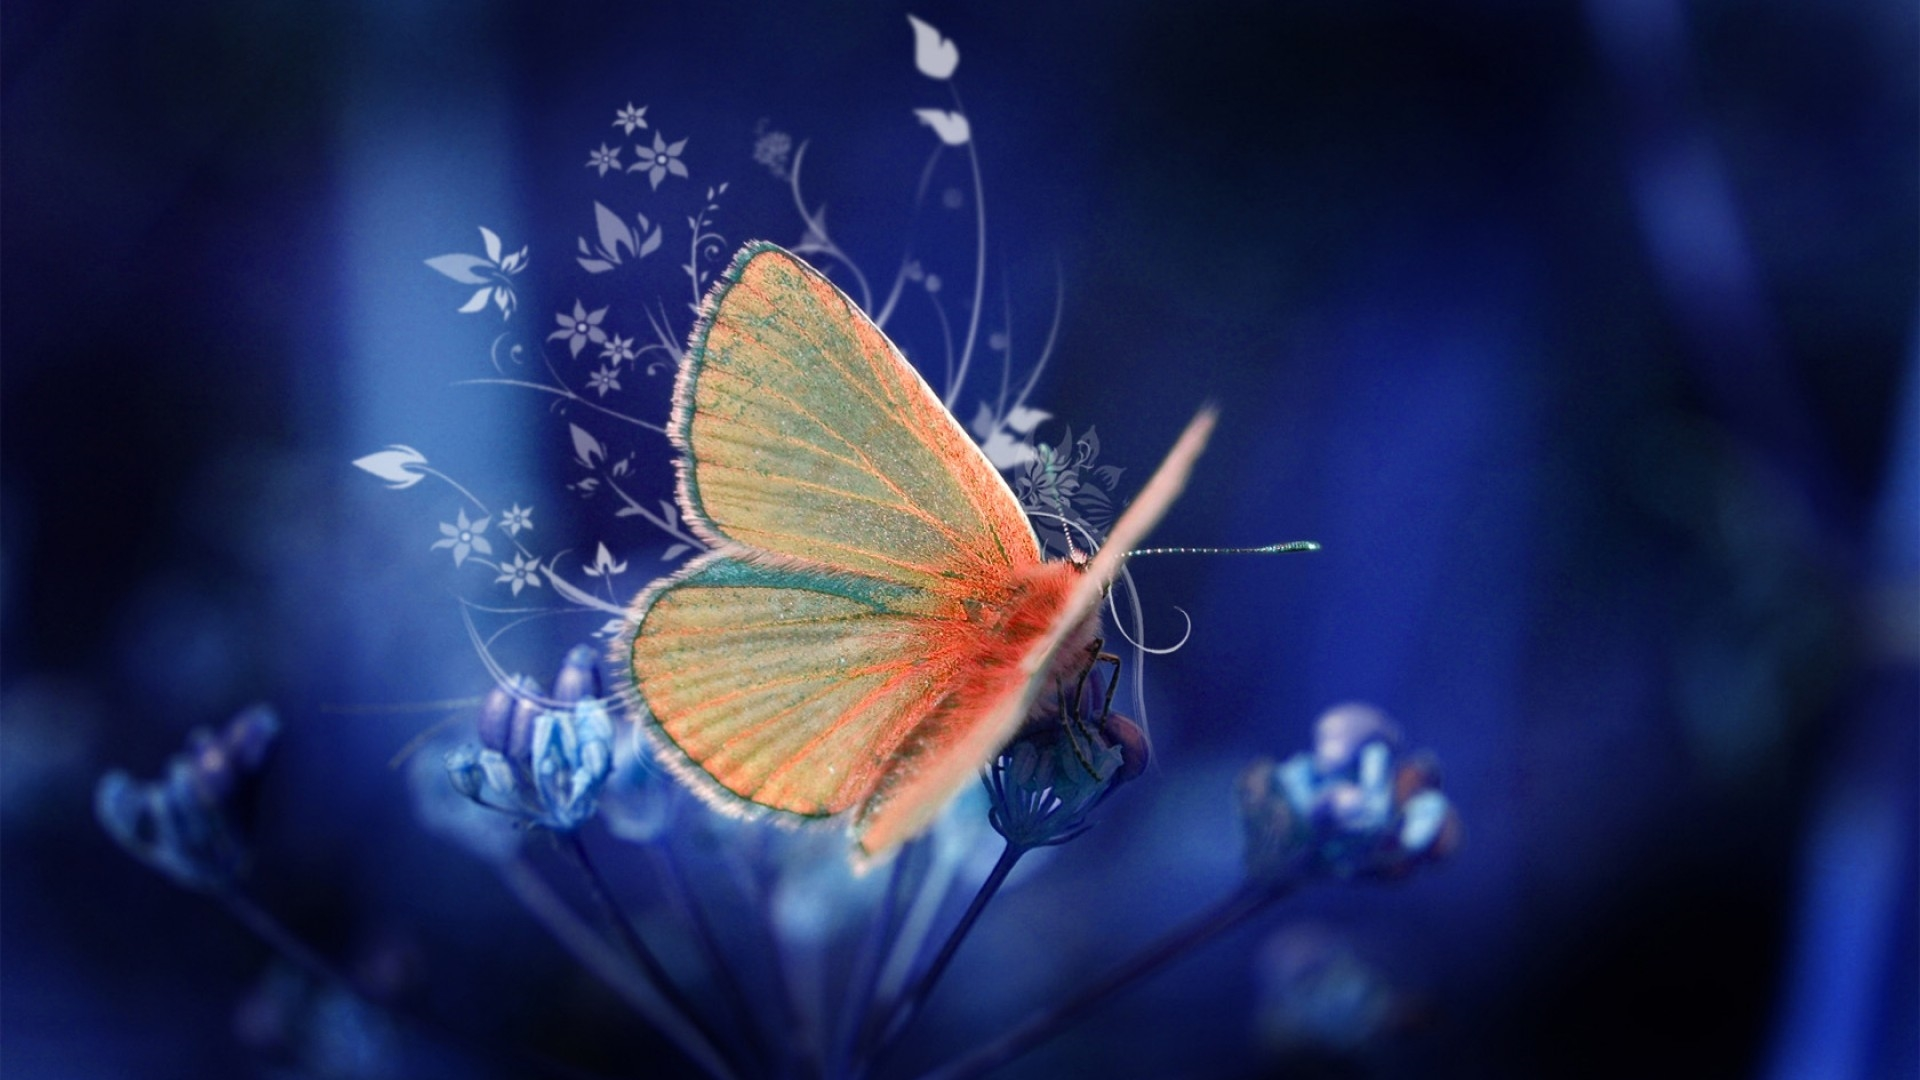 butterflies hd background